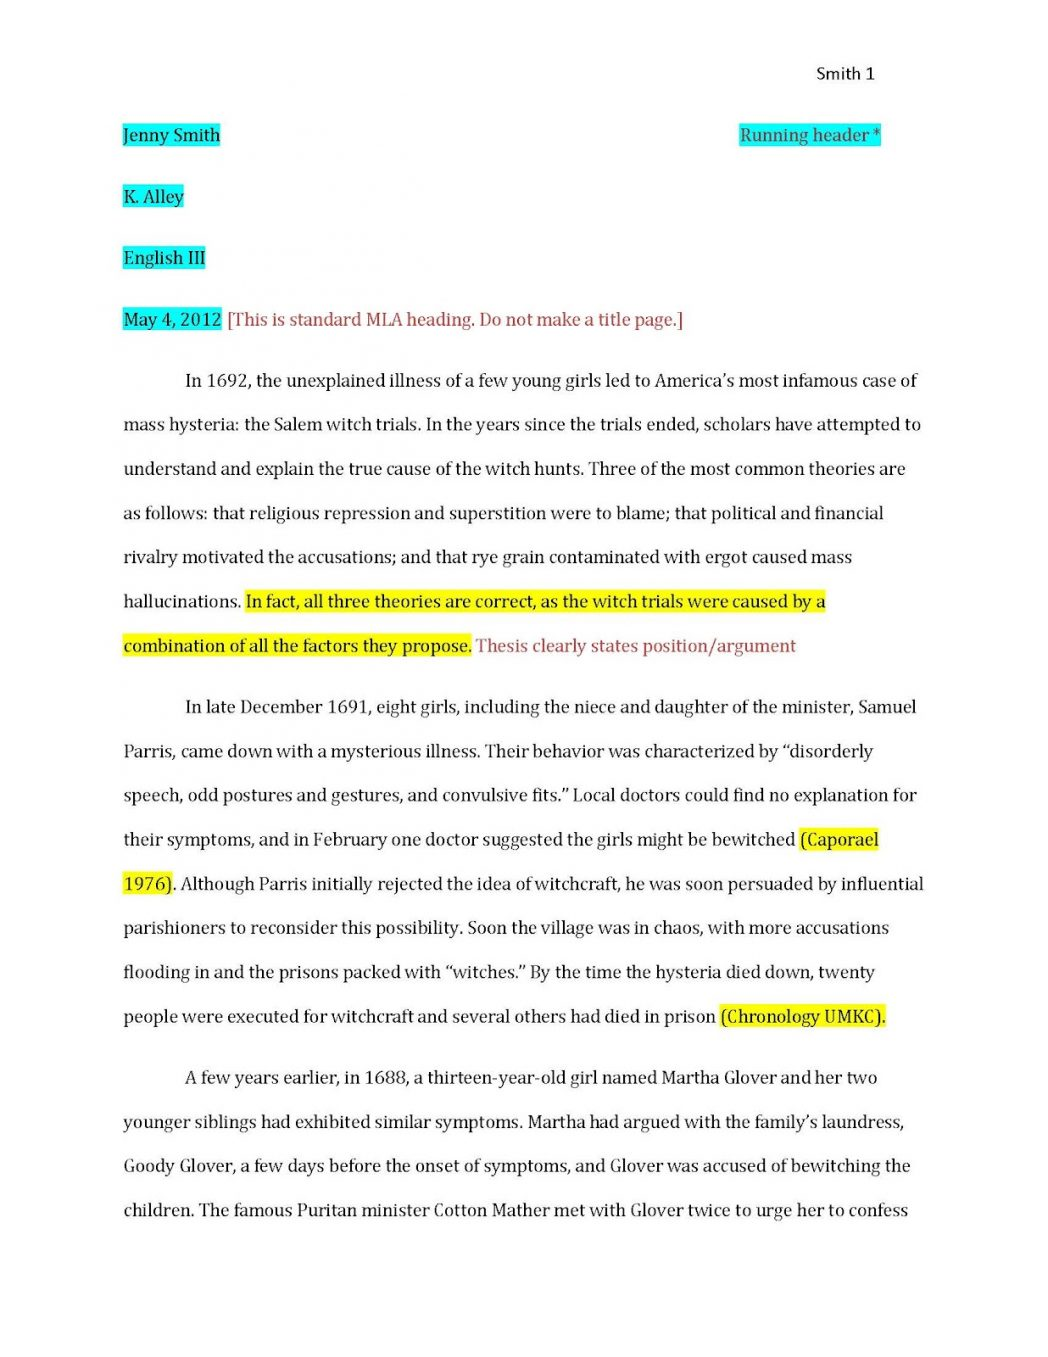 002 Mla Format Essay Generator Author Date References System Ready Set Automaticpaper P 1048x1357 Wondrous Funny Title Paper Software Download Full